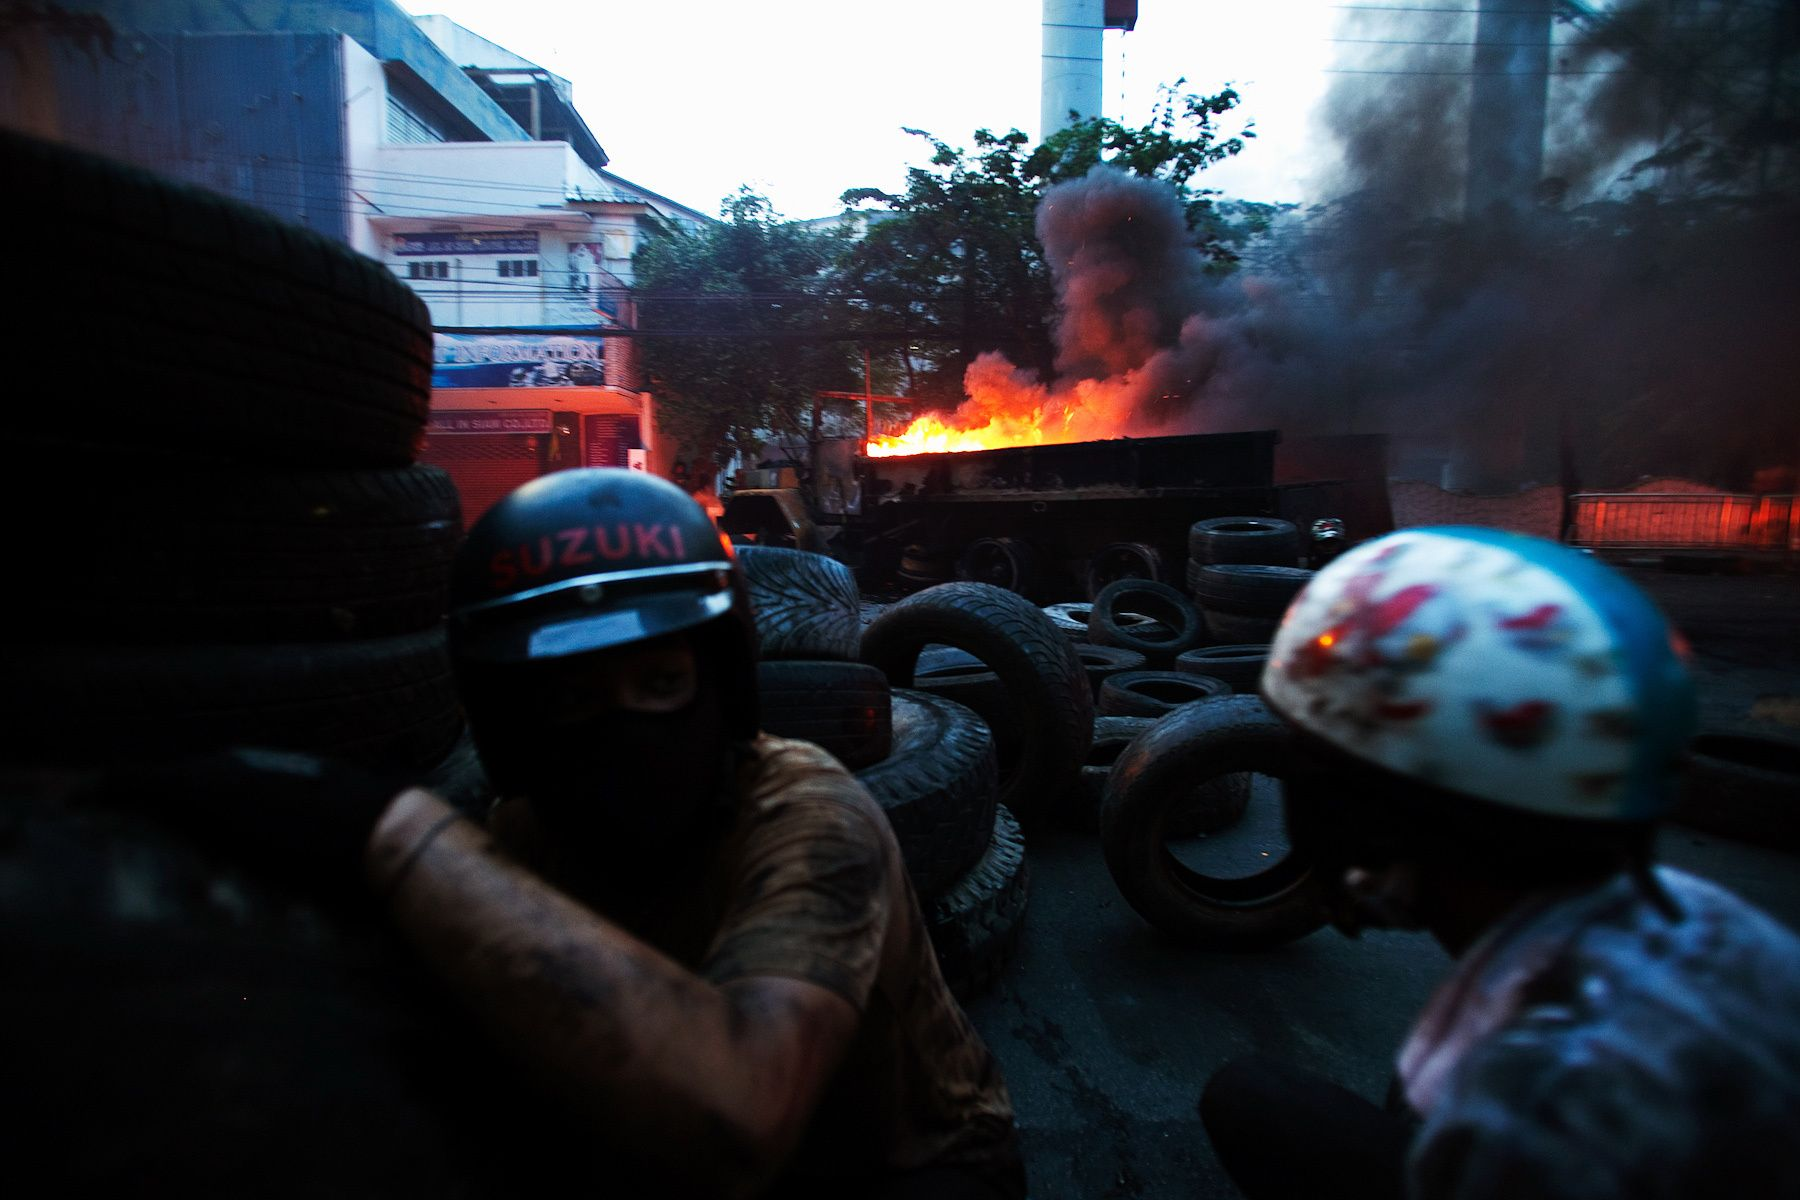 Members of The United Front for Democracy Against Dictatorship(UDD) burn tires during clash with soldiers.